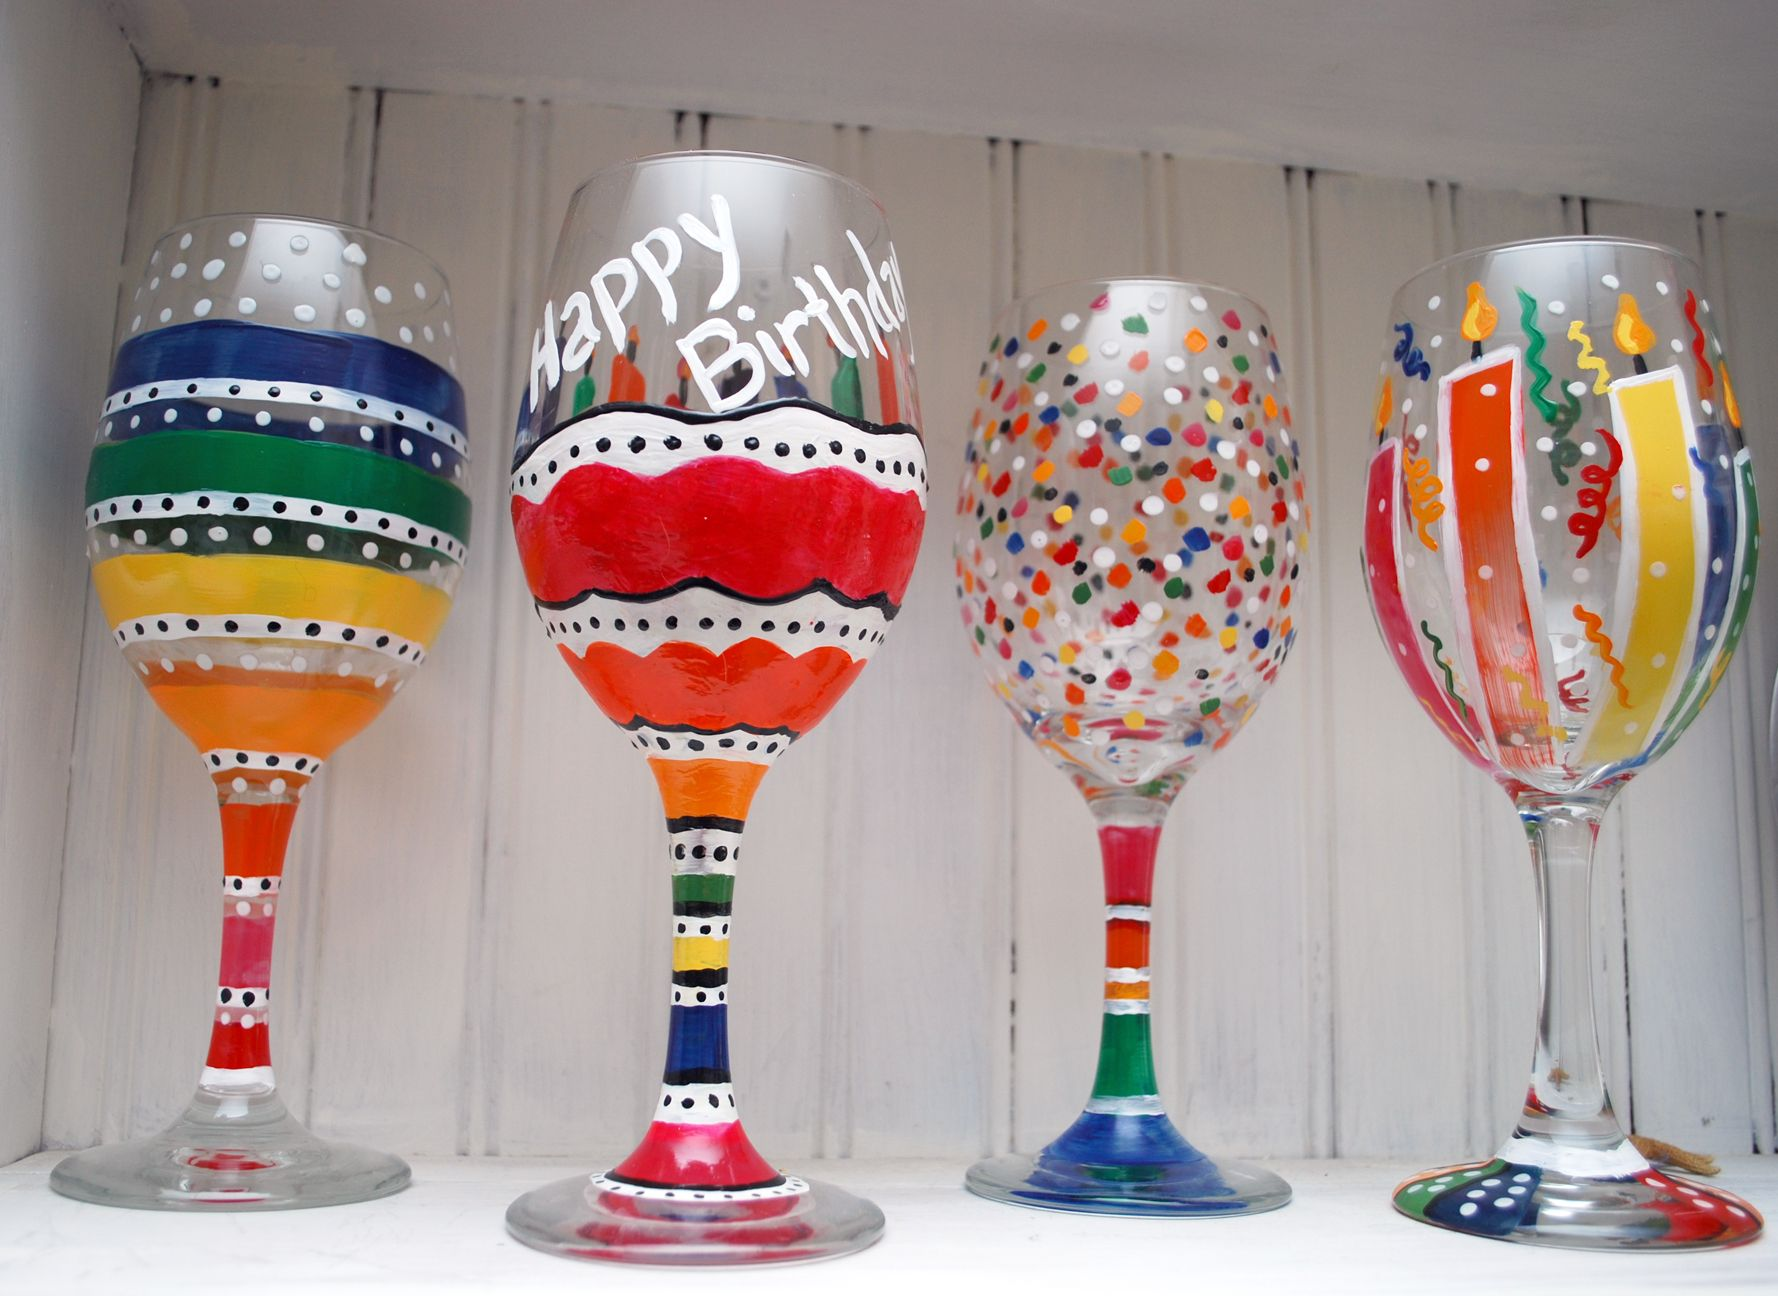 Top 10 DIY Decorations For Your Wine Glass